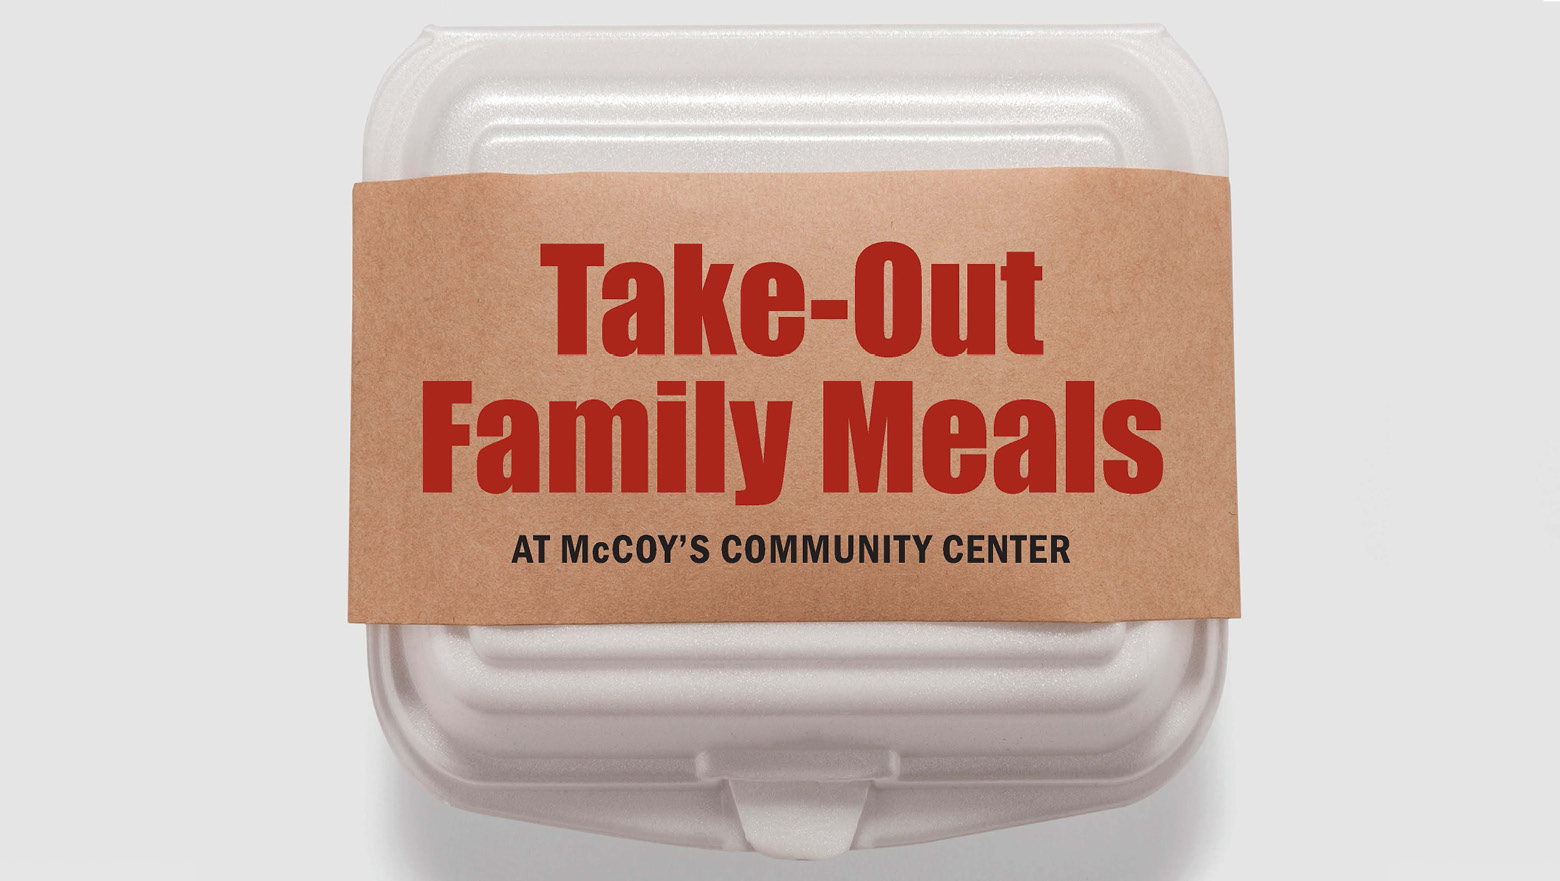 Take-Out Family Meals: Monday Special